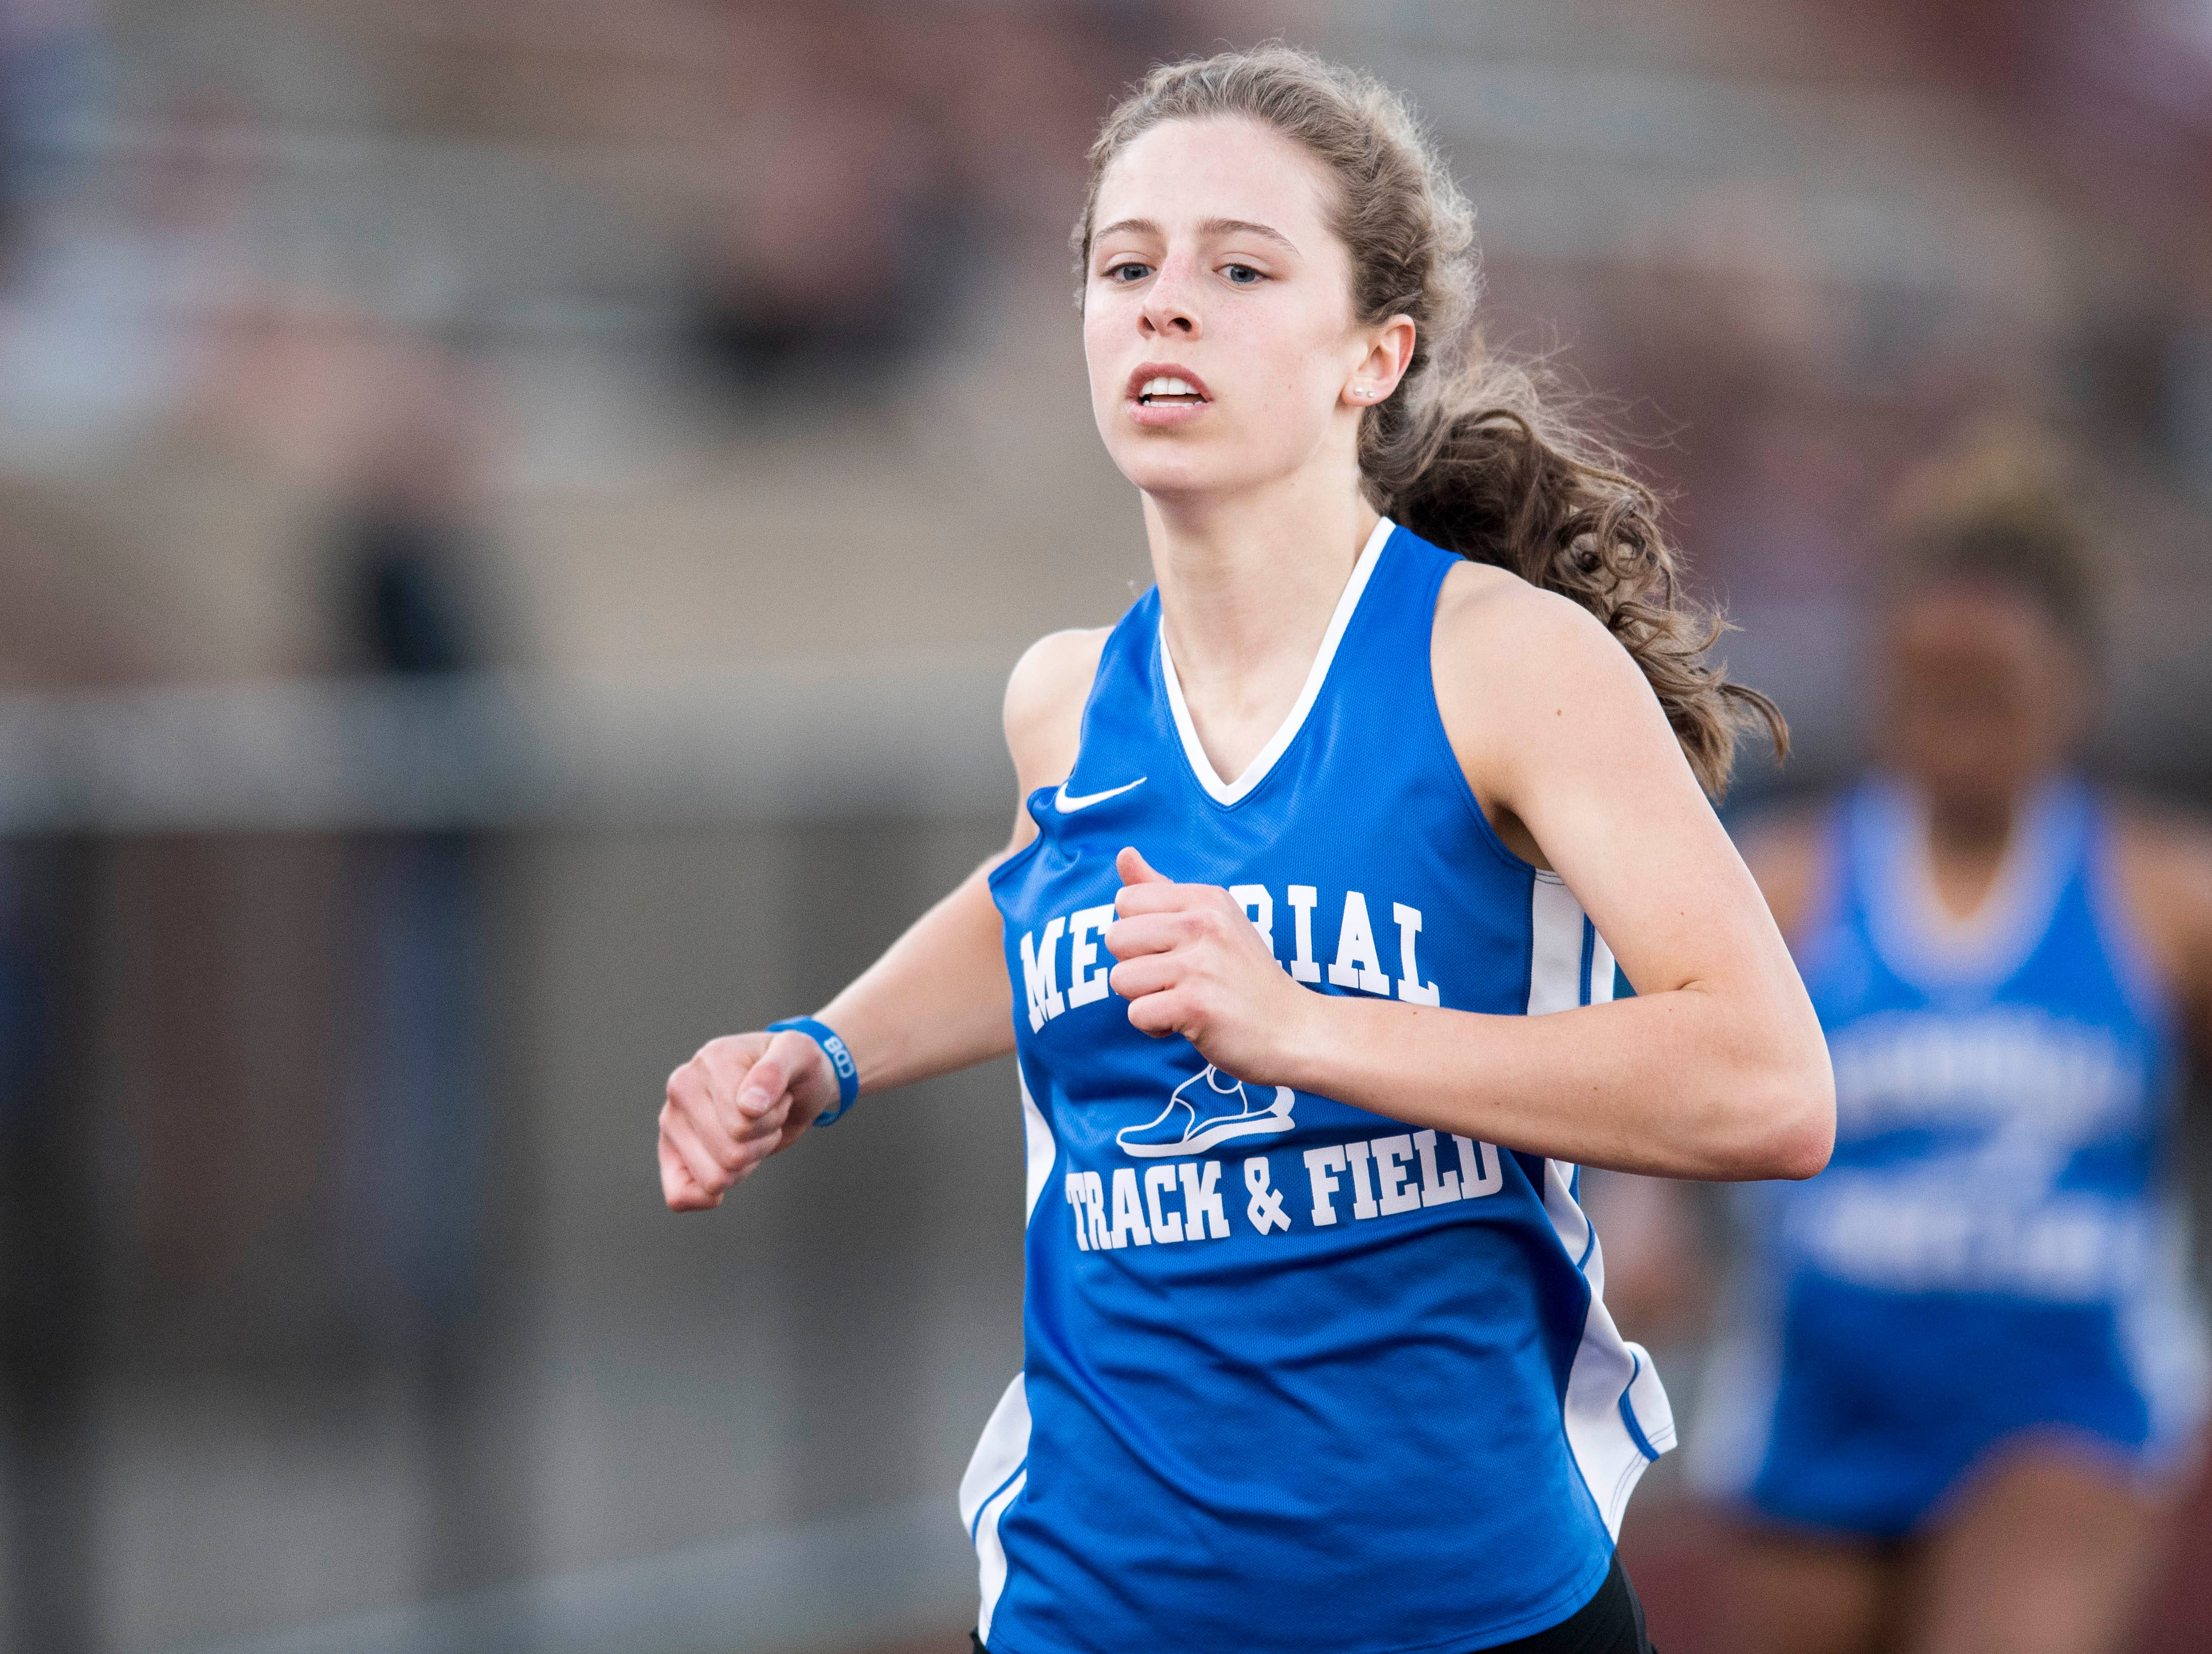 Memorial's Ellen Hayhurst crosses the finish line in the girls 200m dash during the 2019 City Track and Field meet at  Central High School Friday, April 12, 2019. Hayhurst placed first in the event.